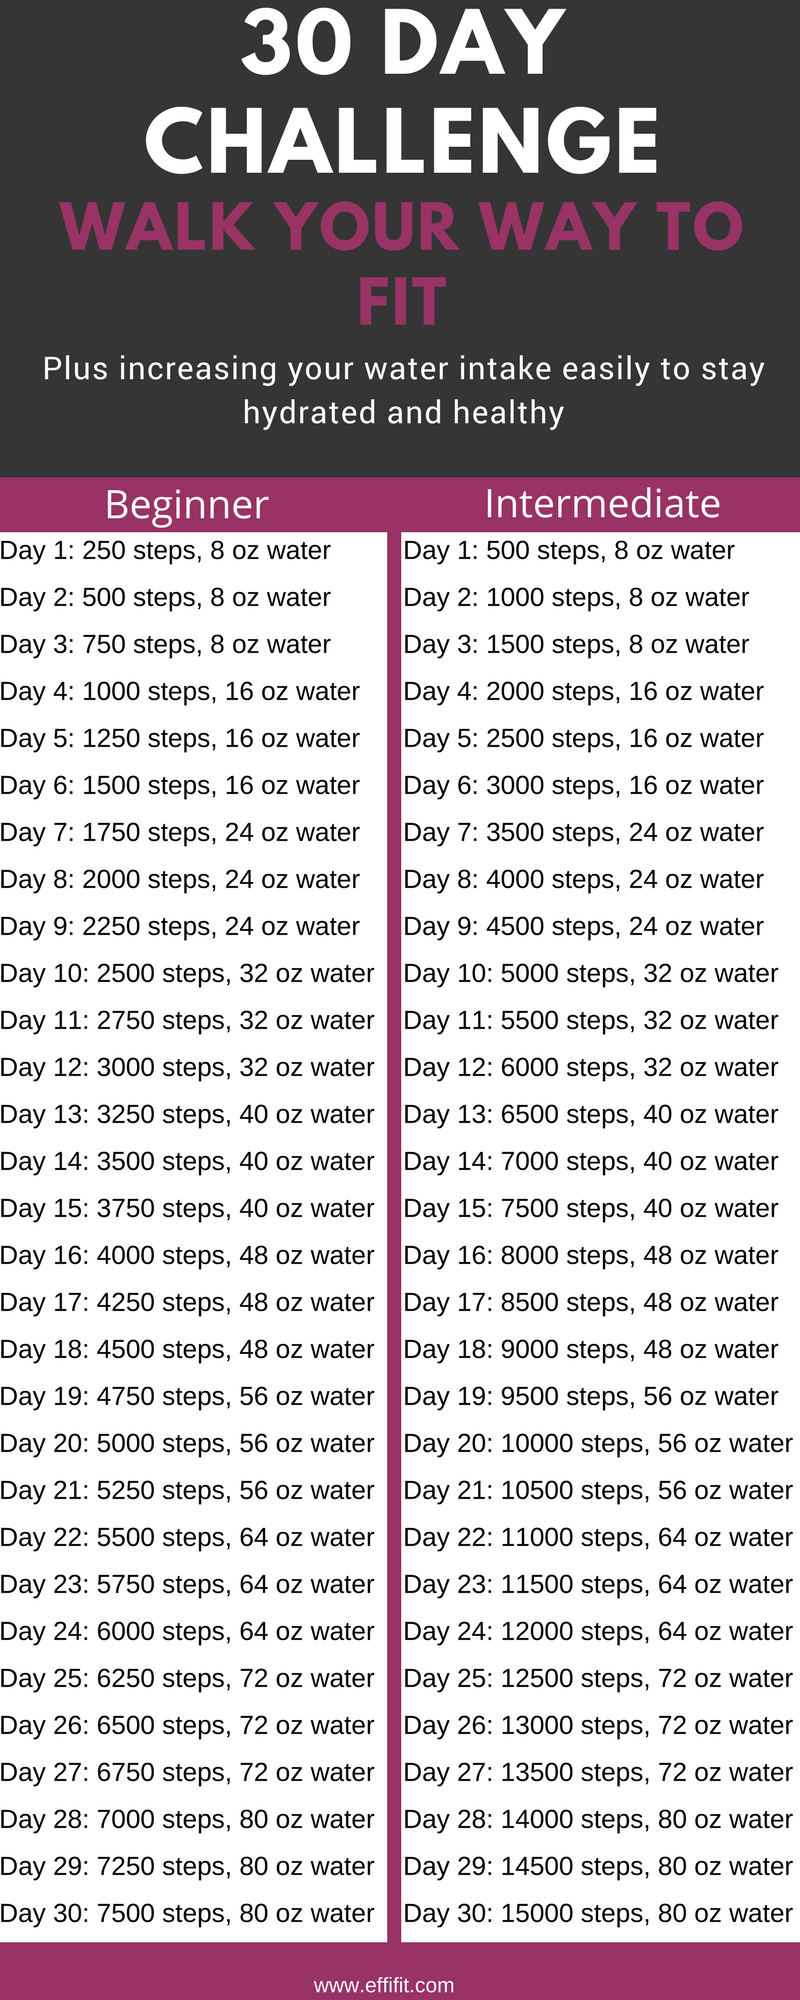 30 Day Challenge: Walk and Drink Your Way to Fit